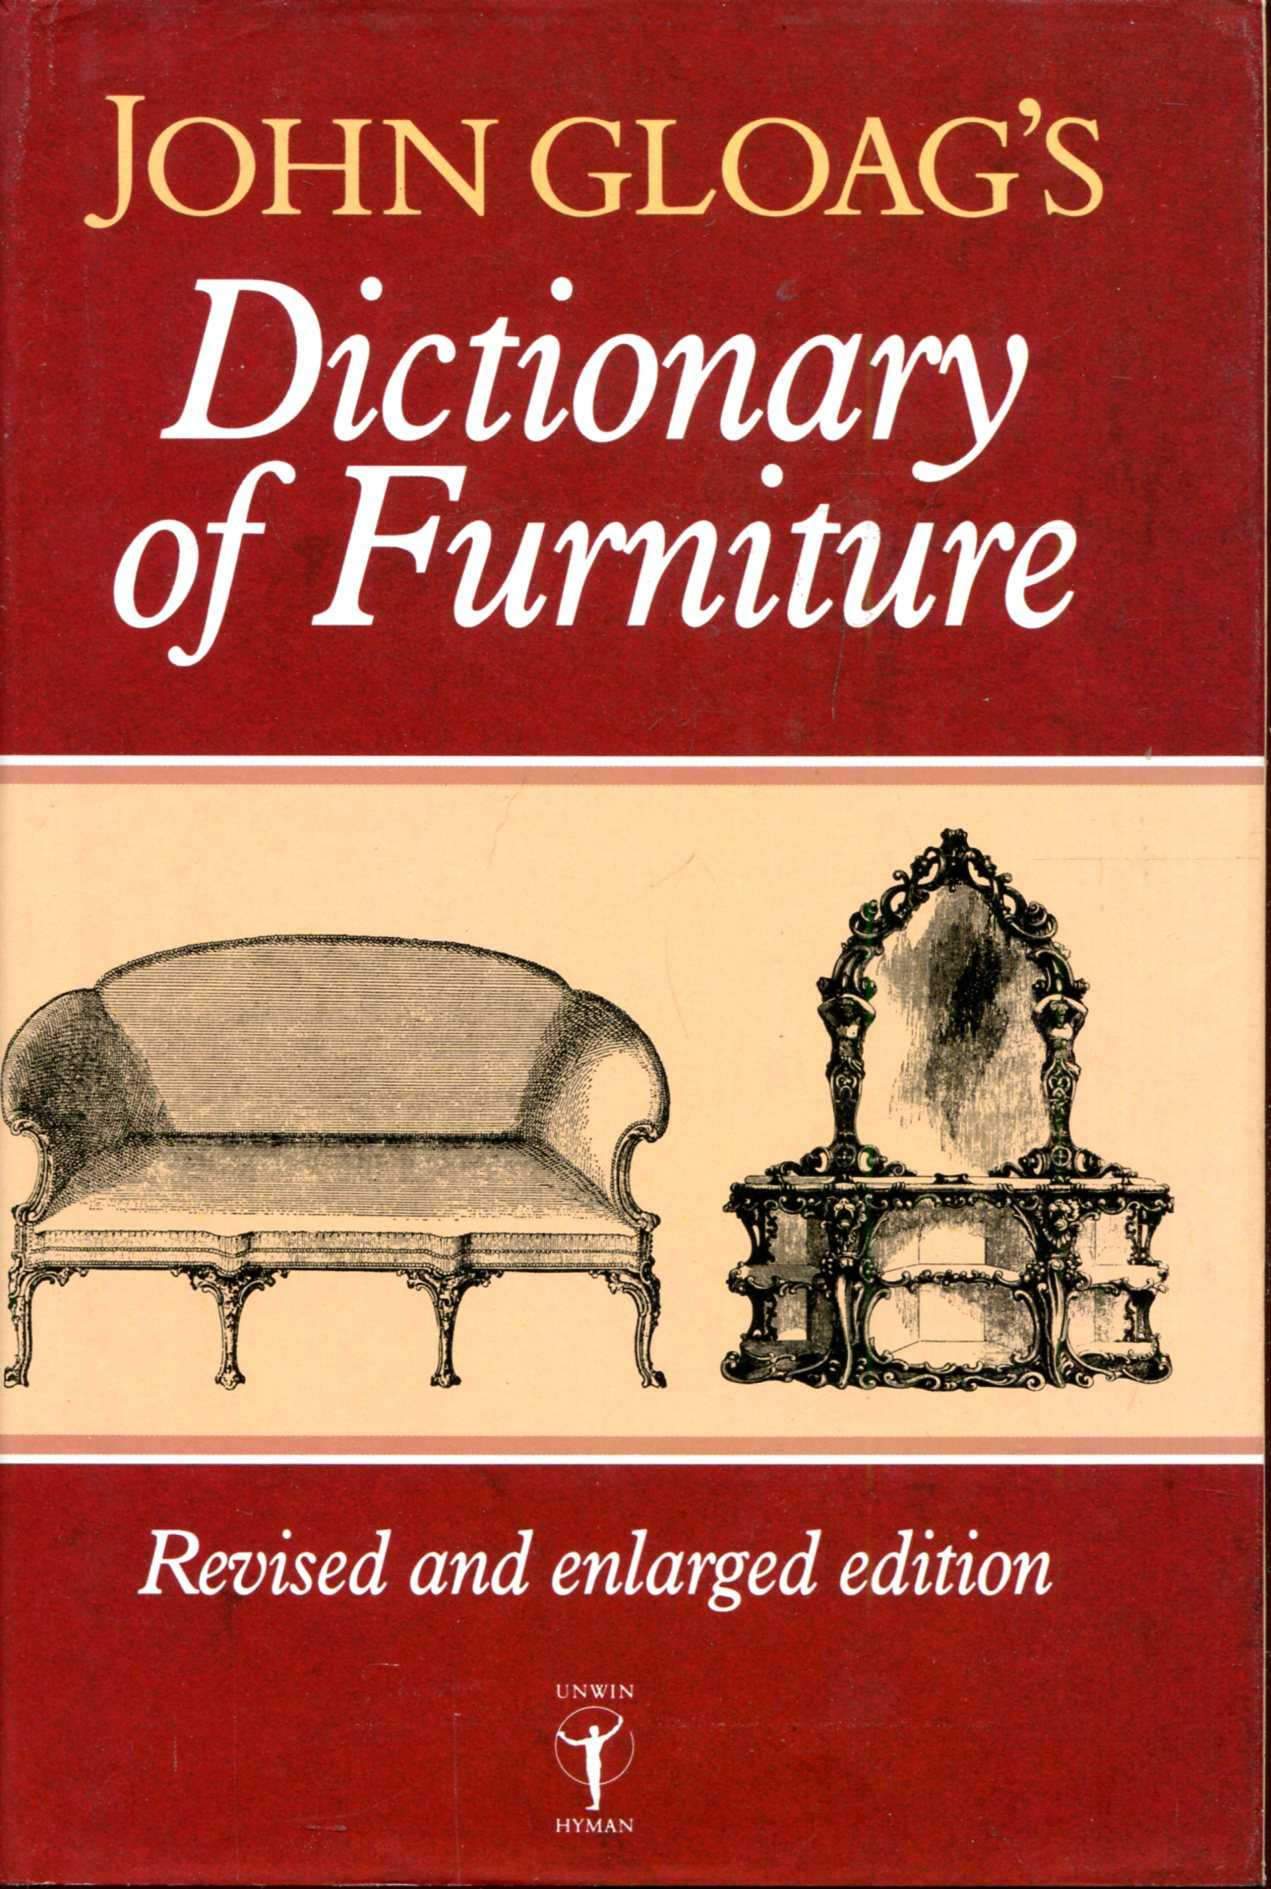 Image for John Gloag's Dictionary of Furniture